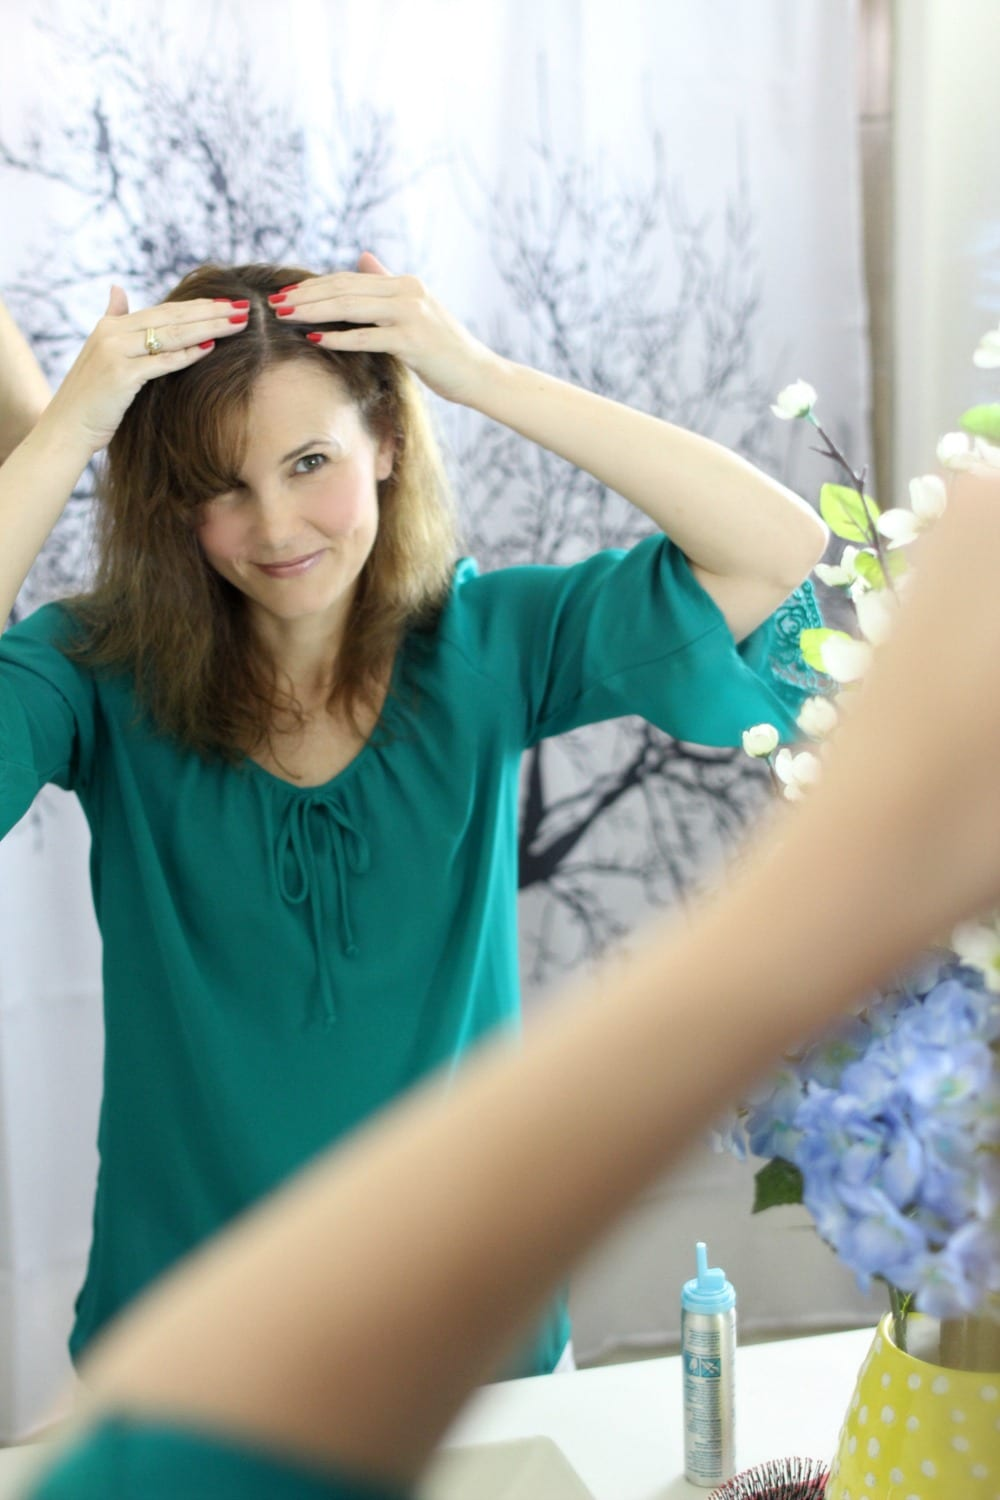 Are you looking for anti-aging hair care tips? Join me and celebrity stylist Jill Crosby as she shares some tips on hair styling, thinning hair and more.